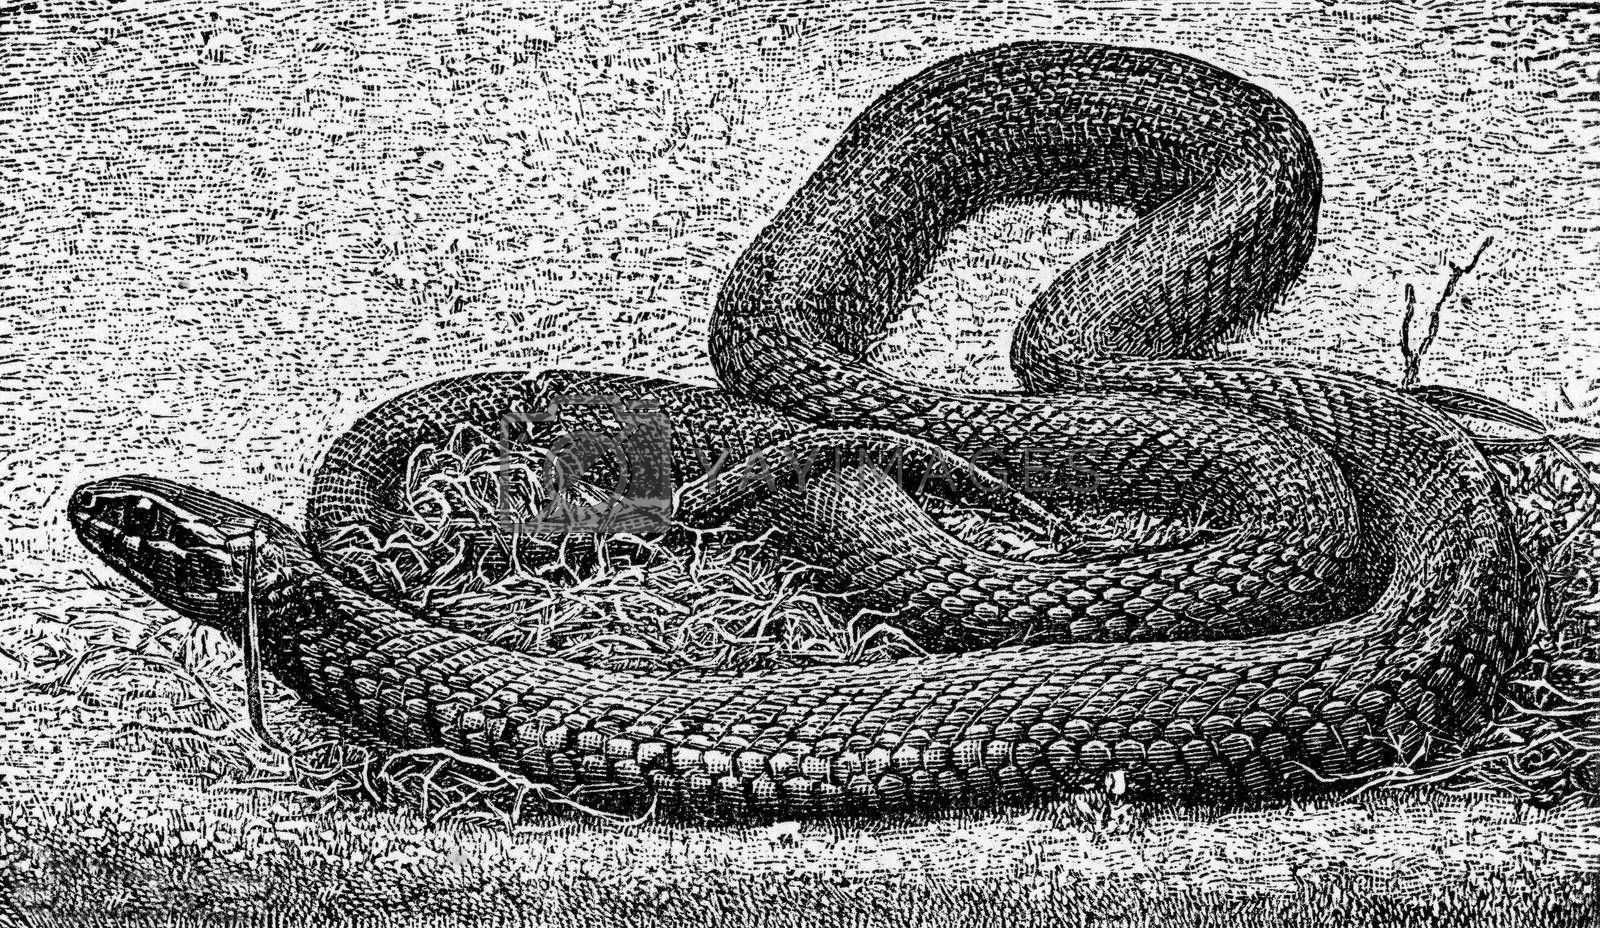 The grass snake, vintage engraved illustration. From Deutch Vogel Teaching in Zoology.